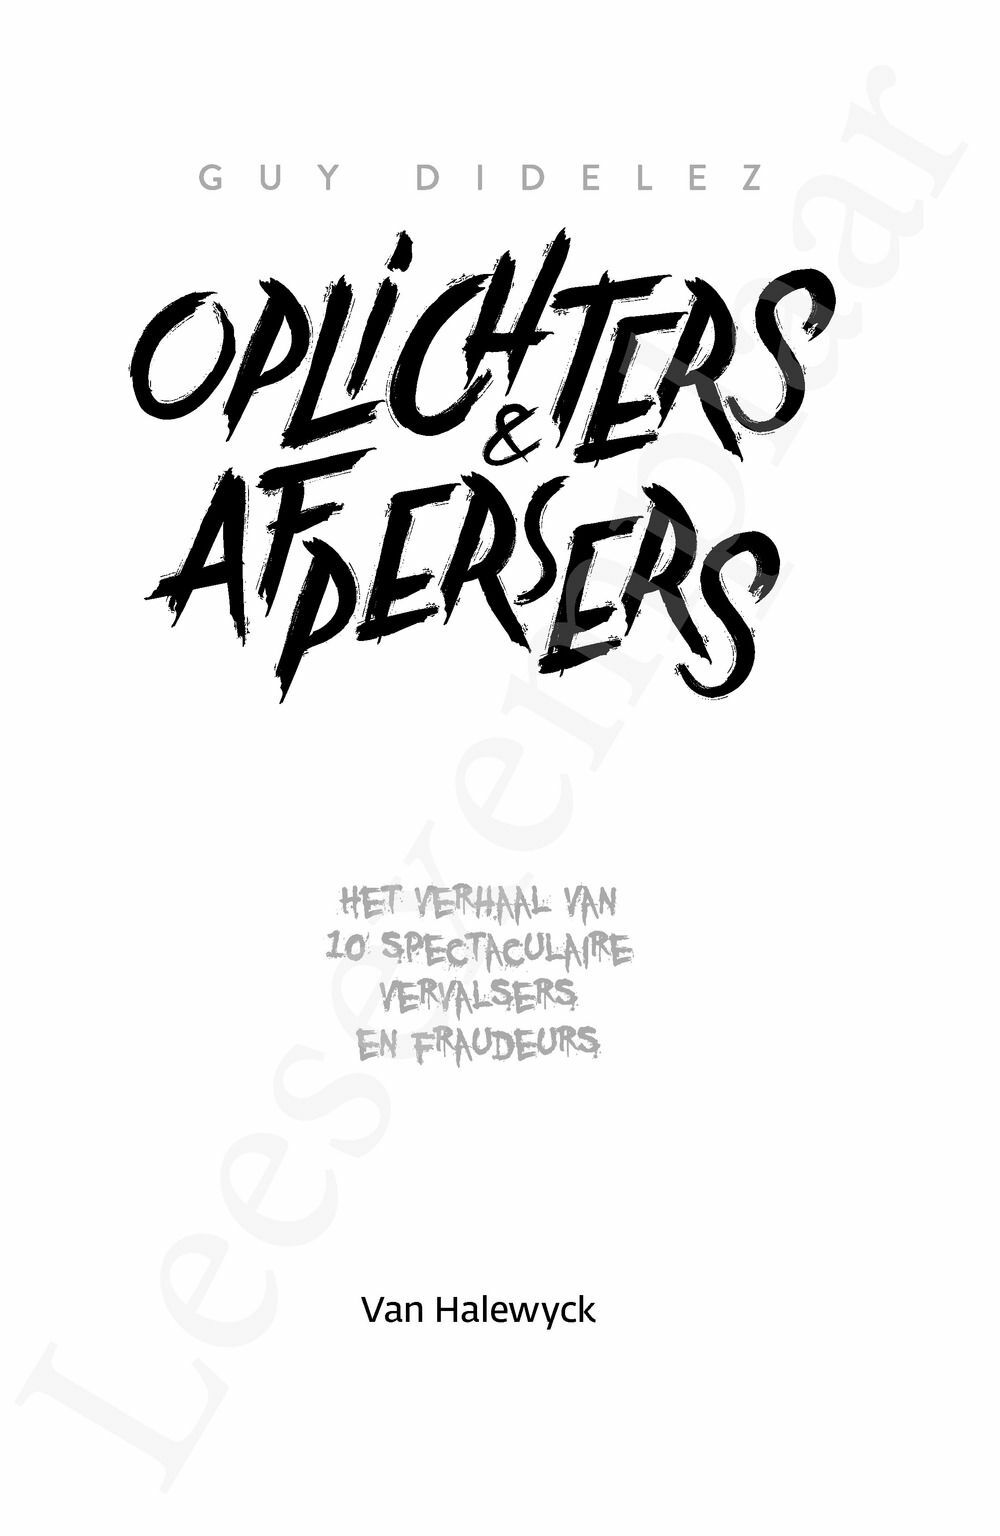 Preview: Oplichters & afpersers